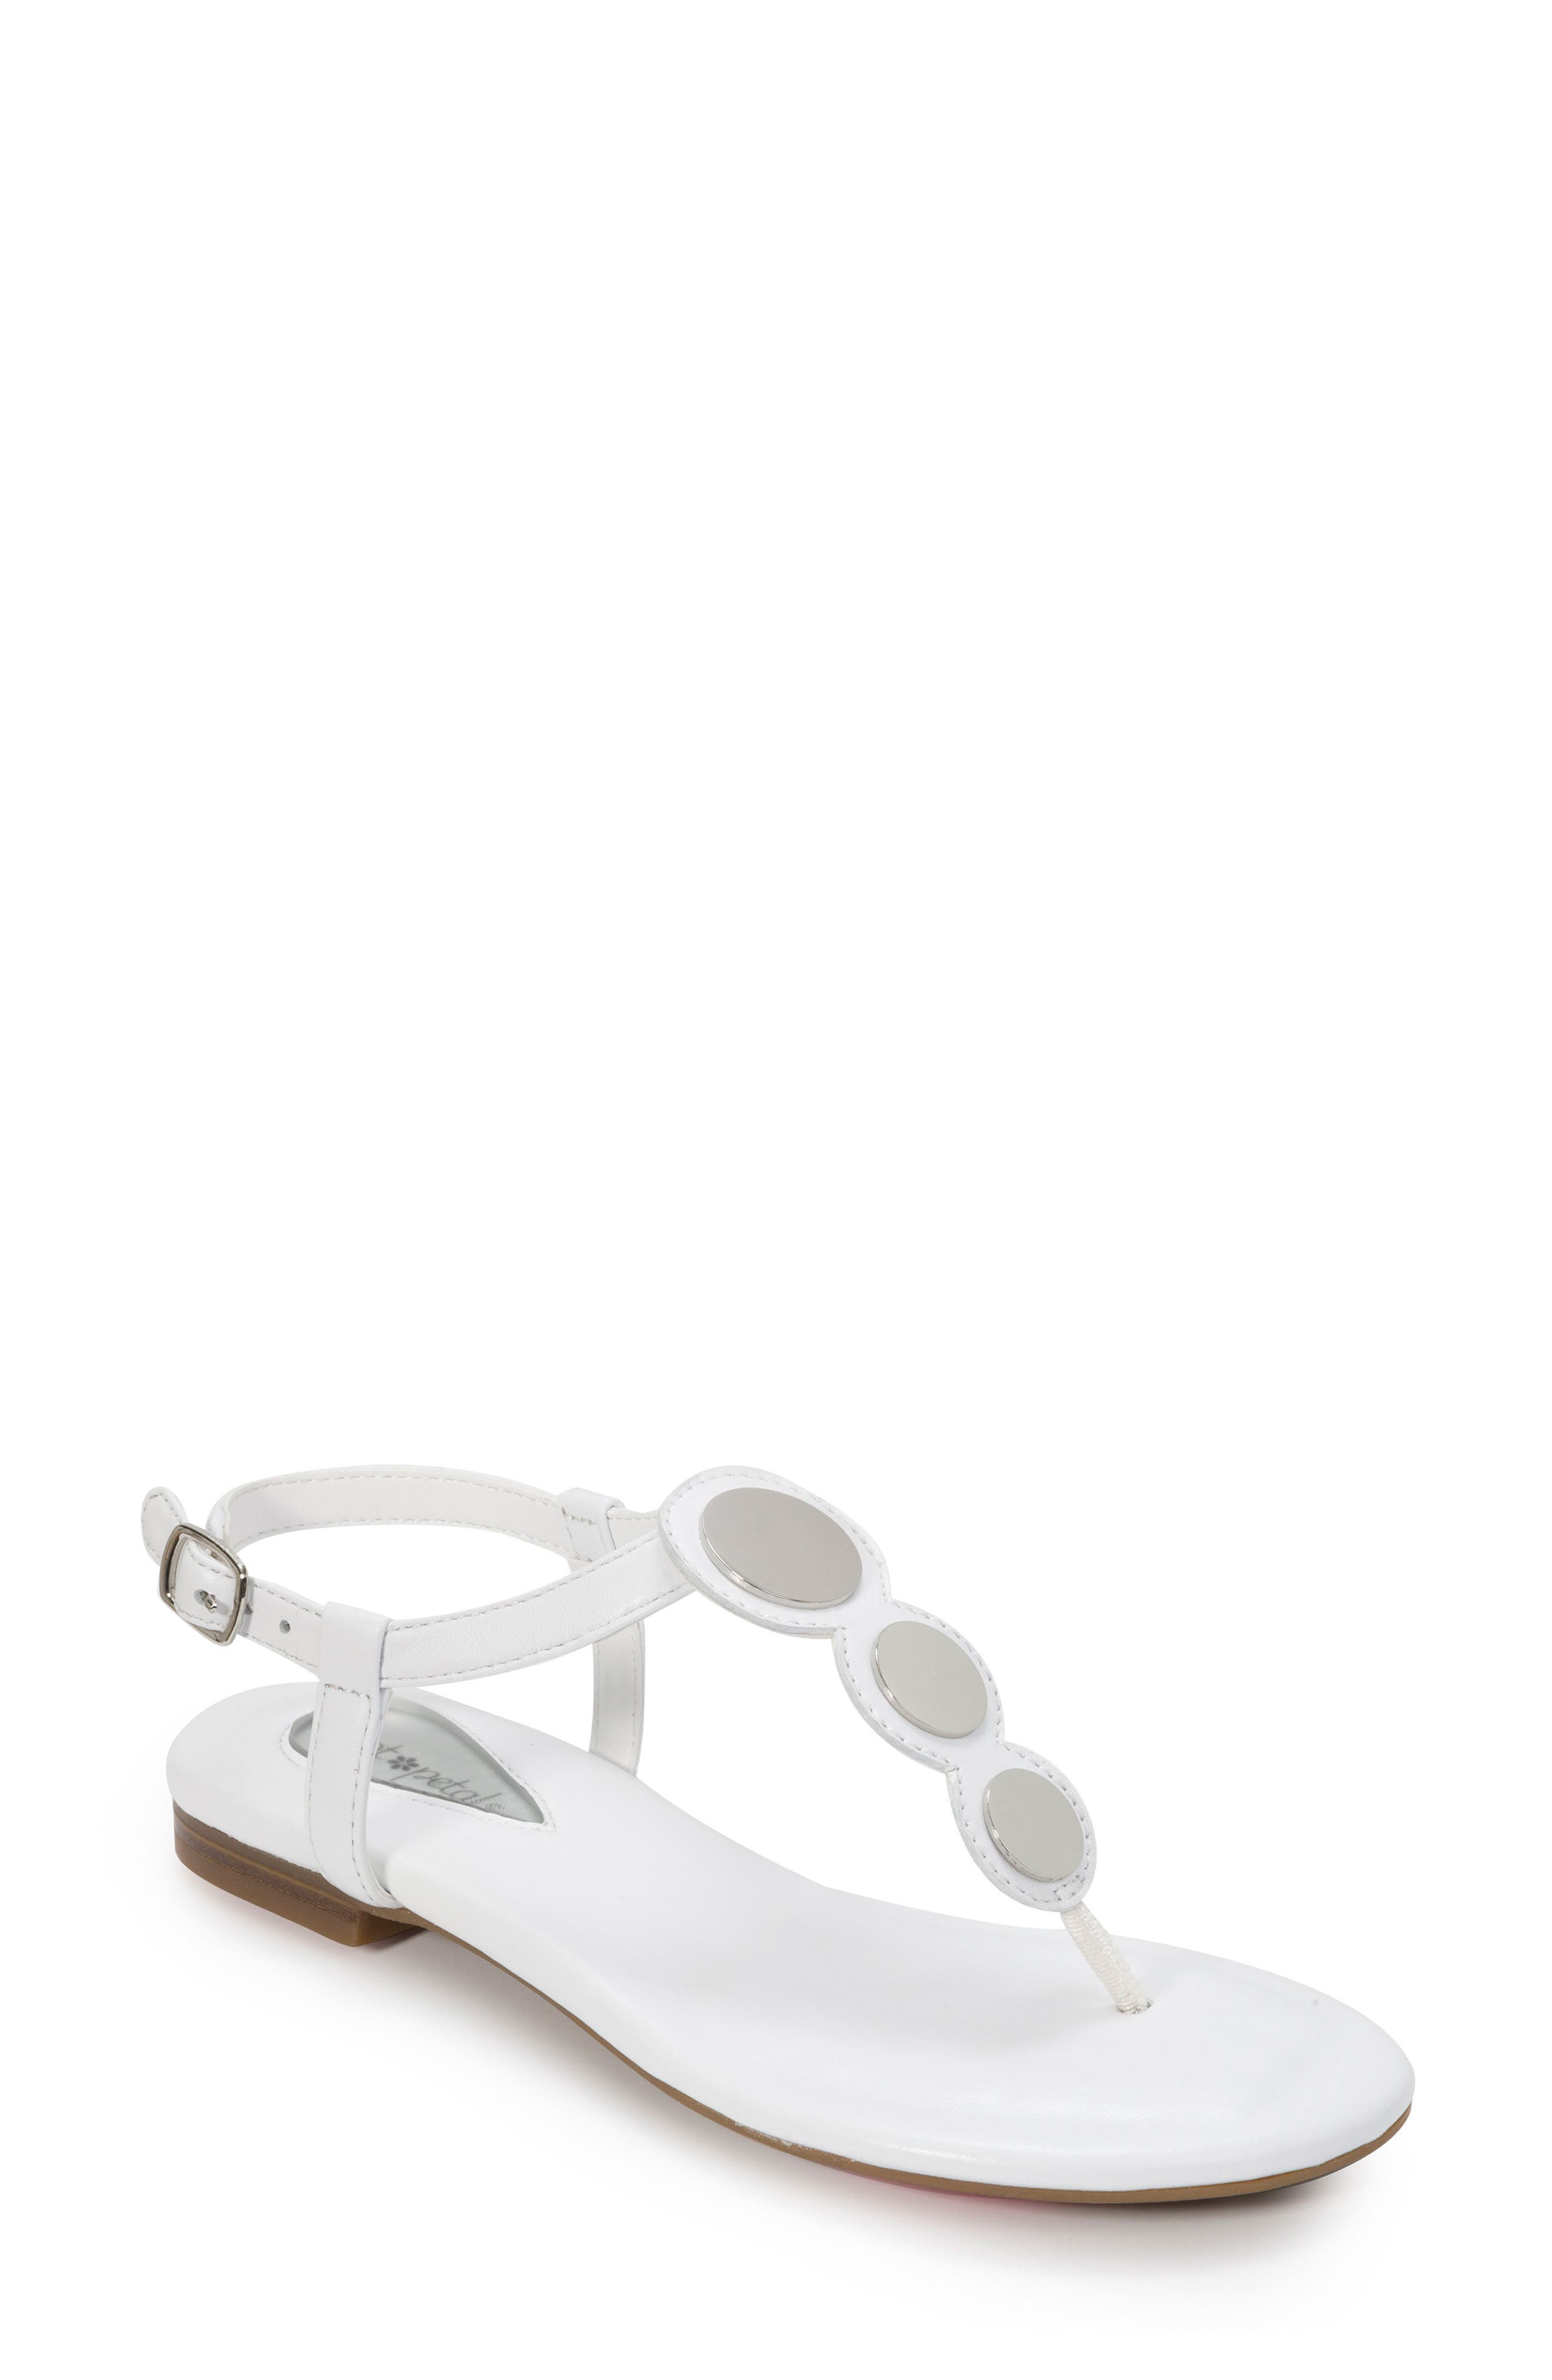 FOOT PETALS Ellie Sandal in White Leather